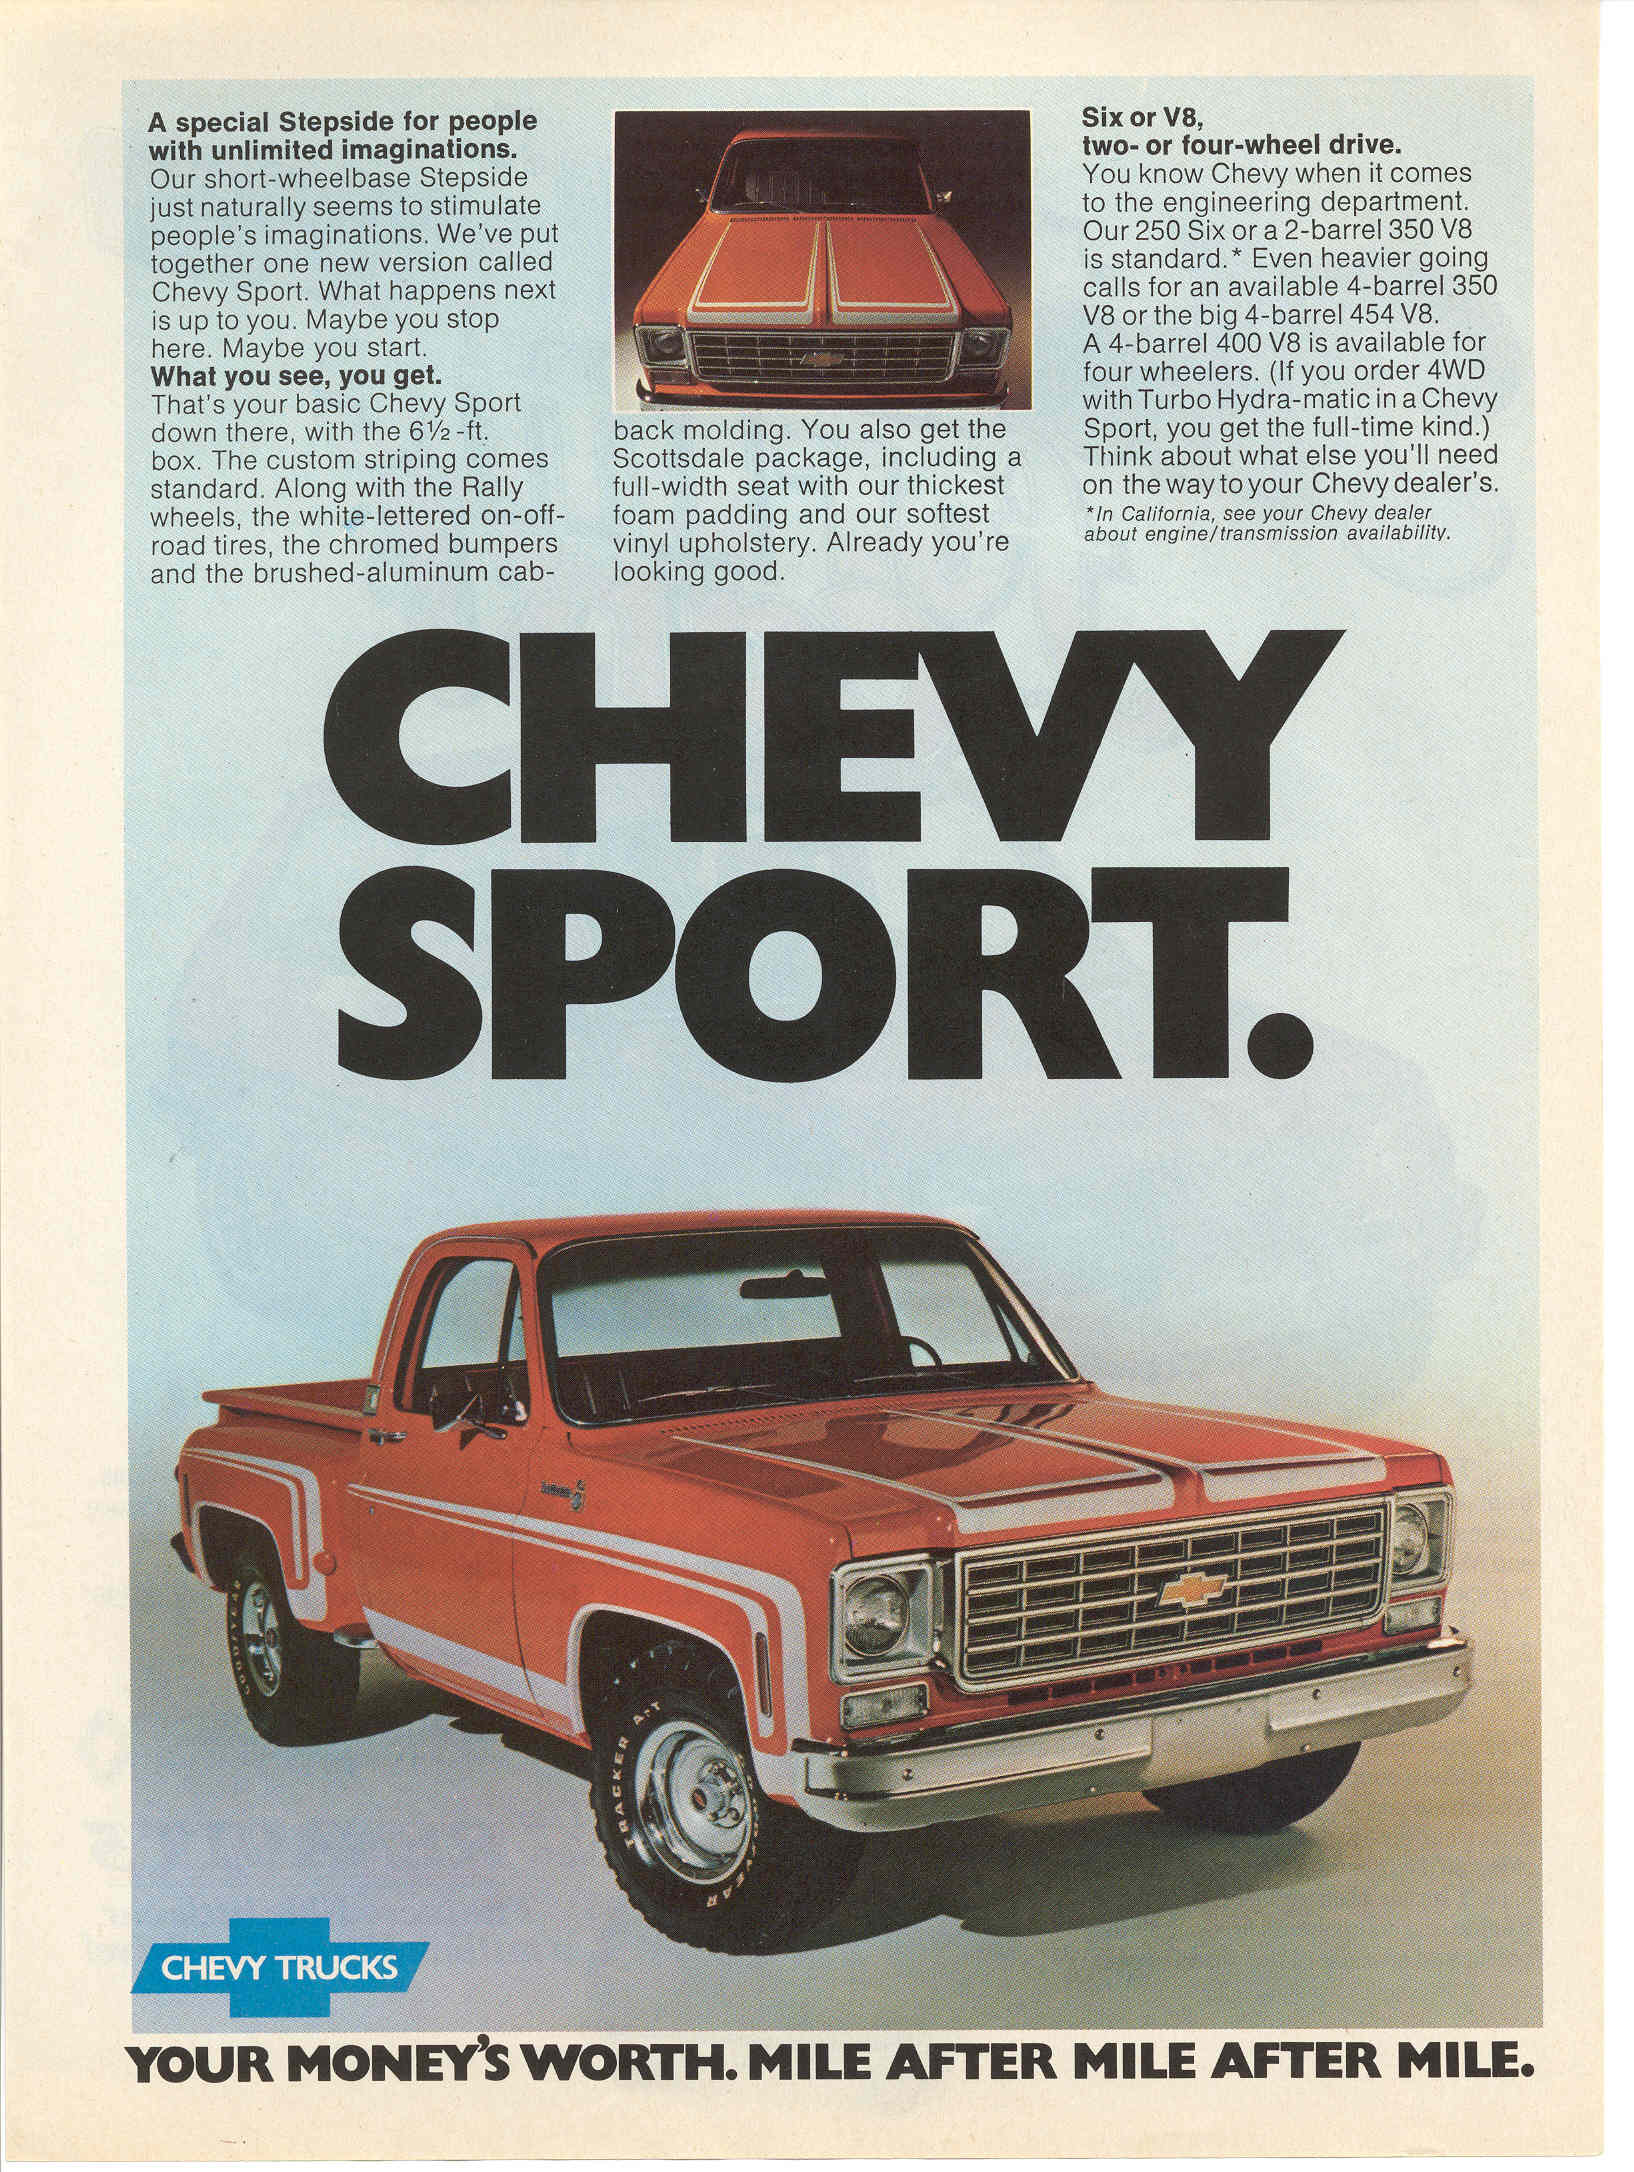 That is a Chevy Sport.